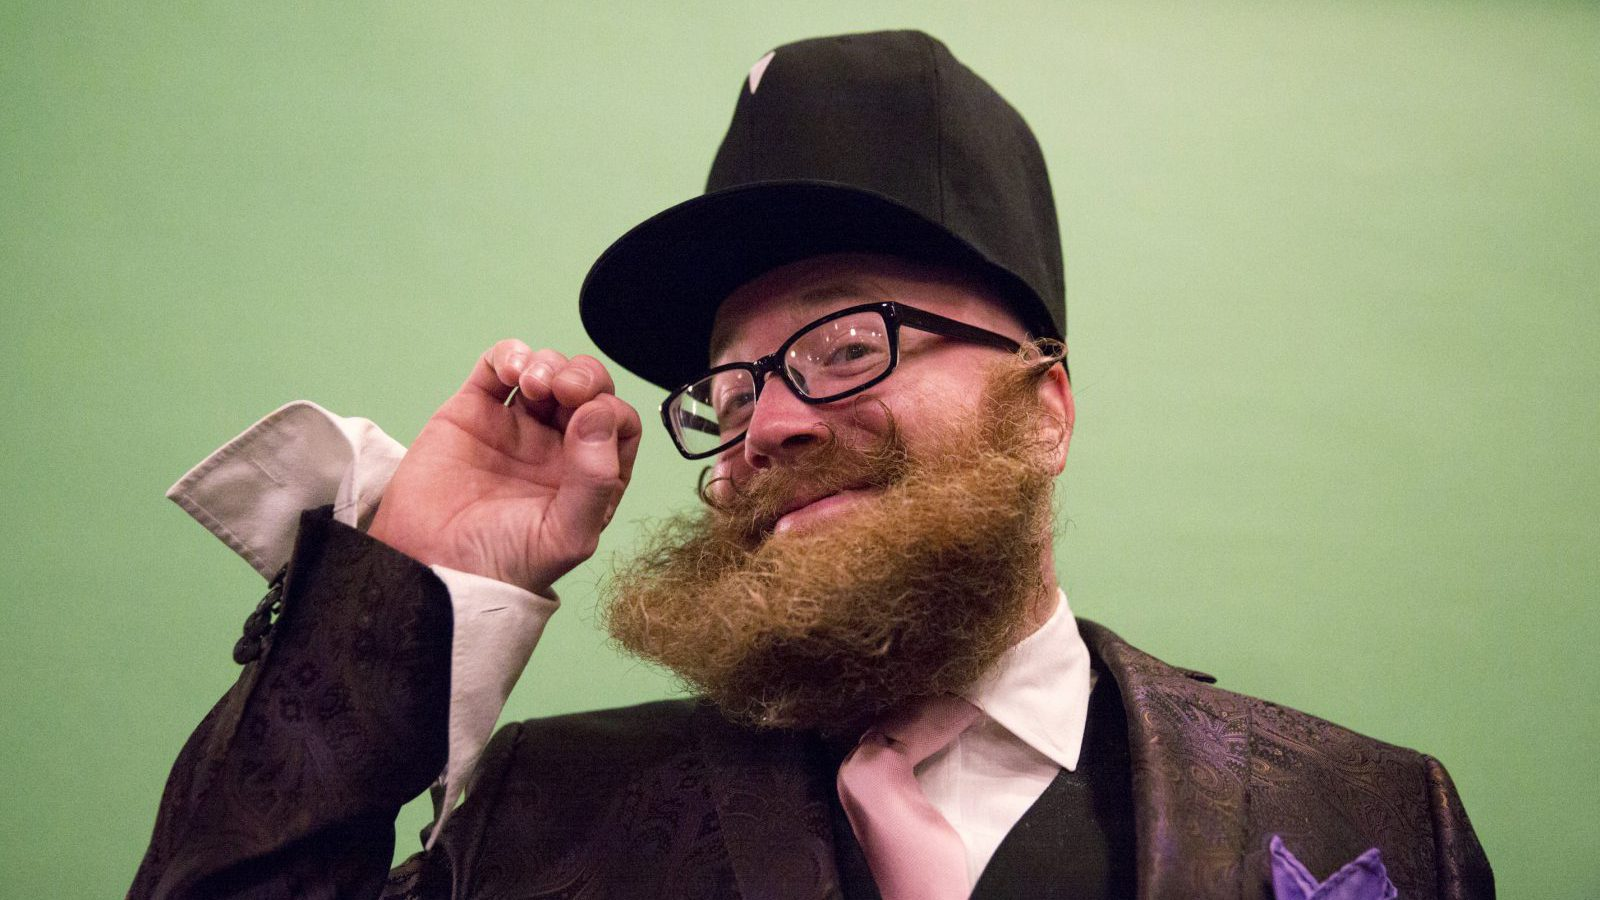 Why hipsters love beards, according to an evolutionary